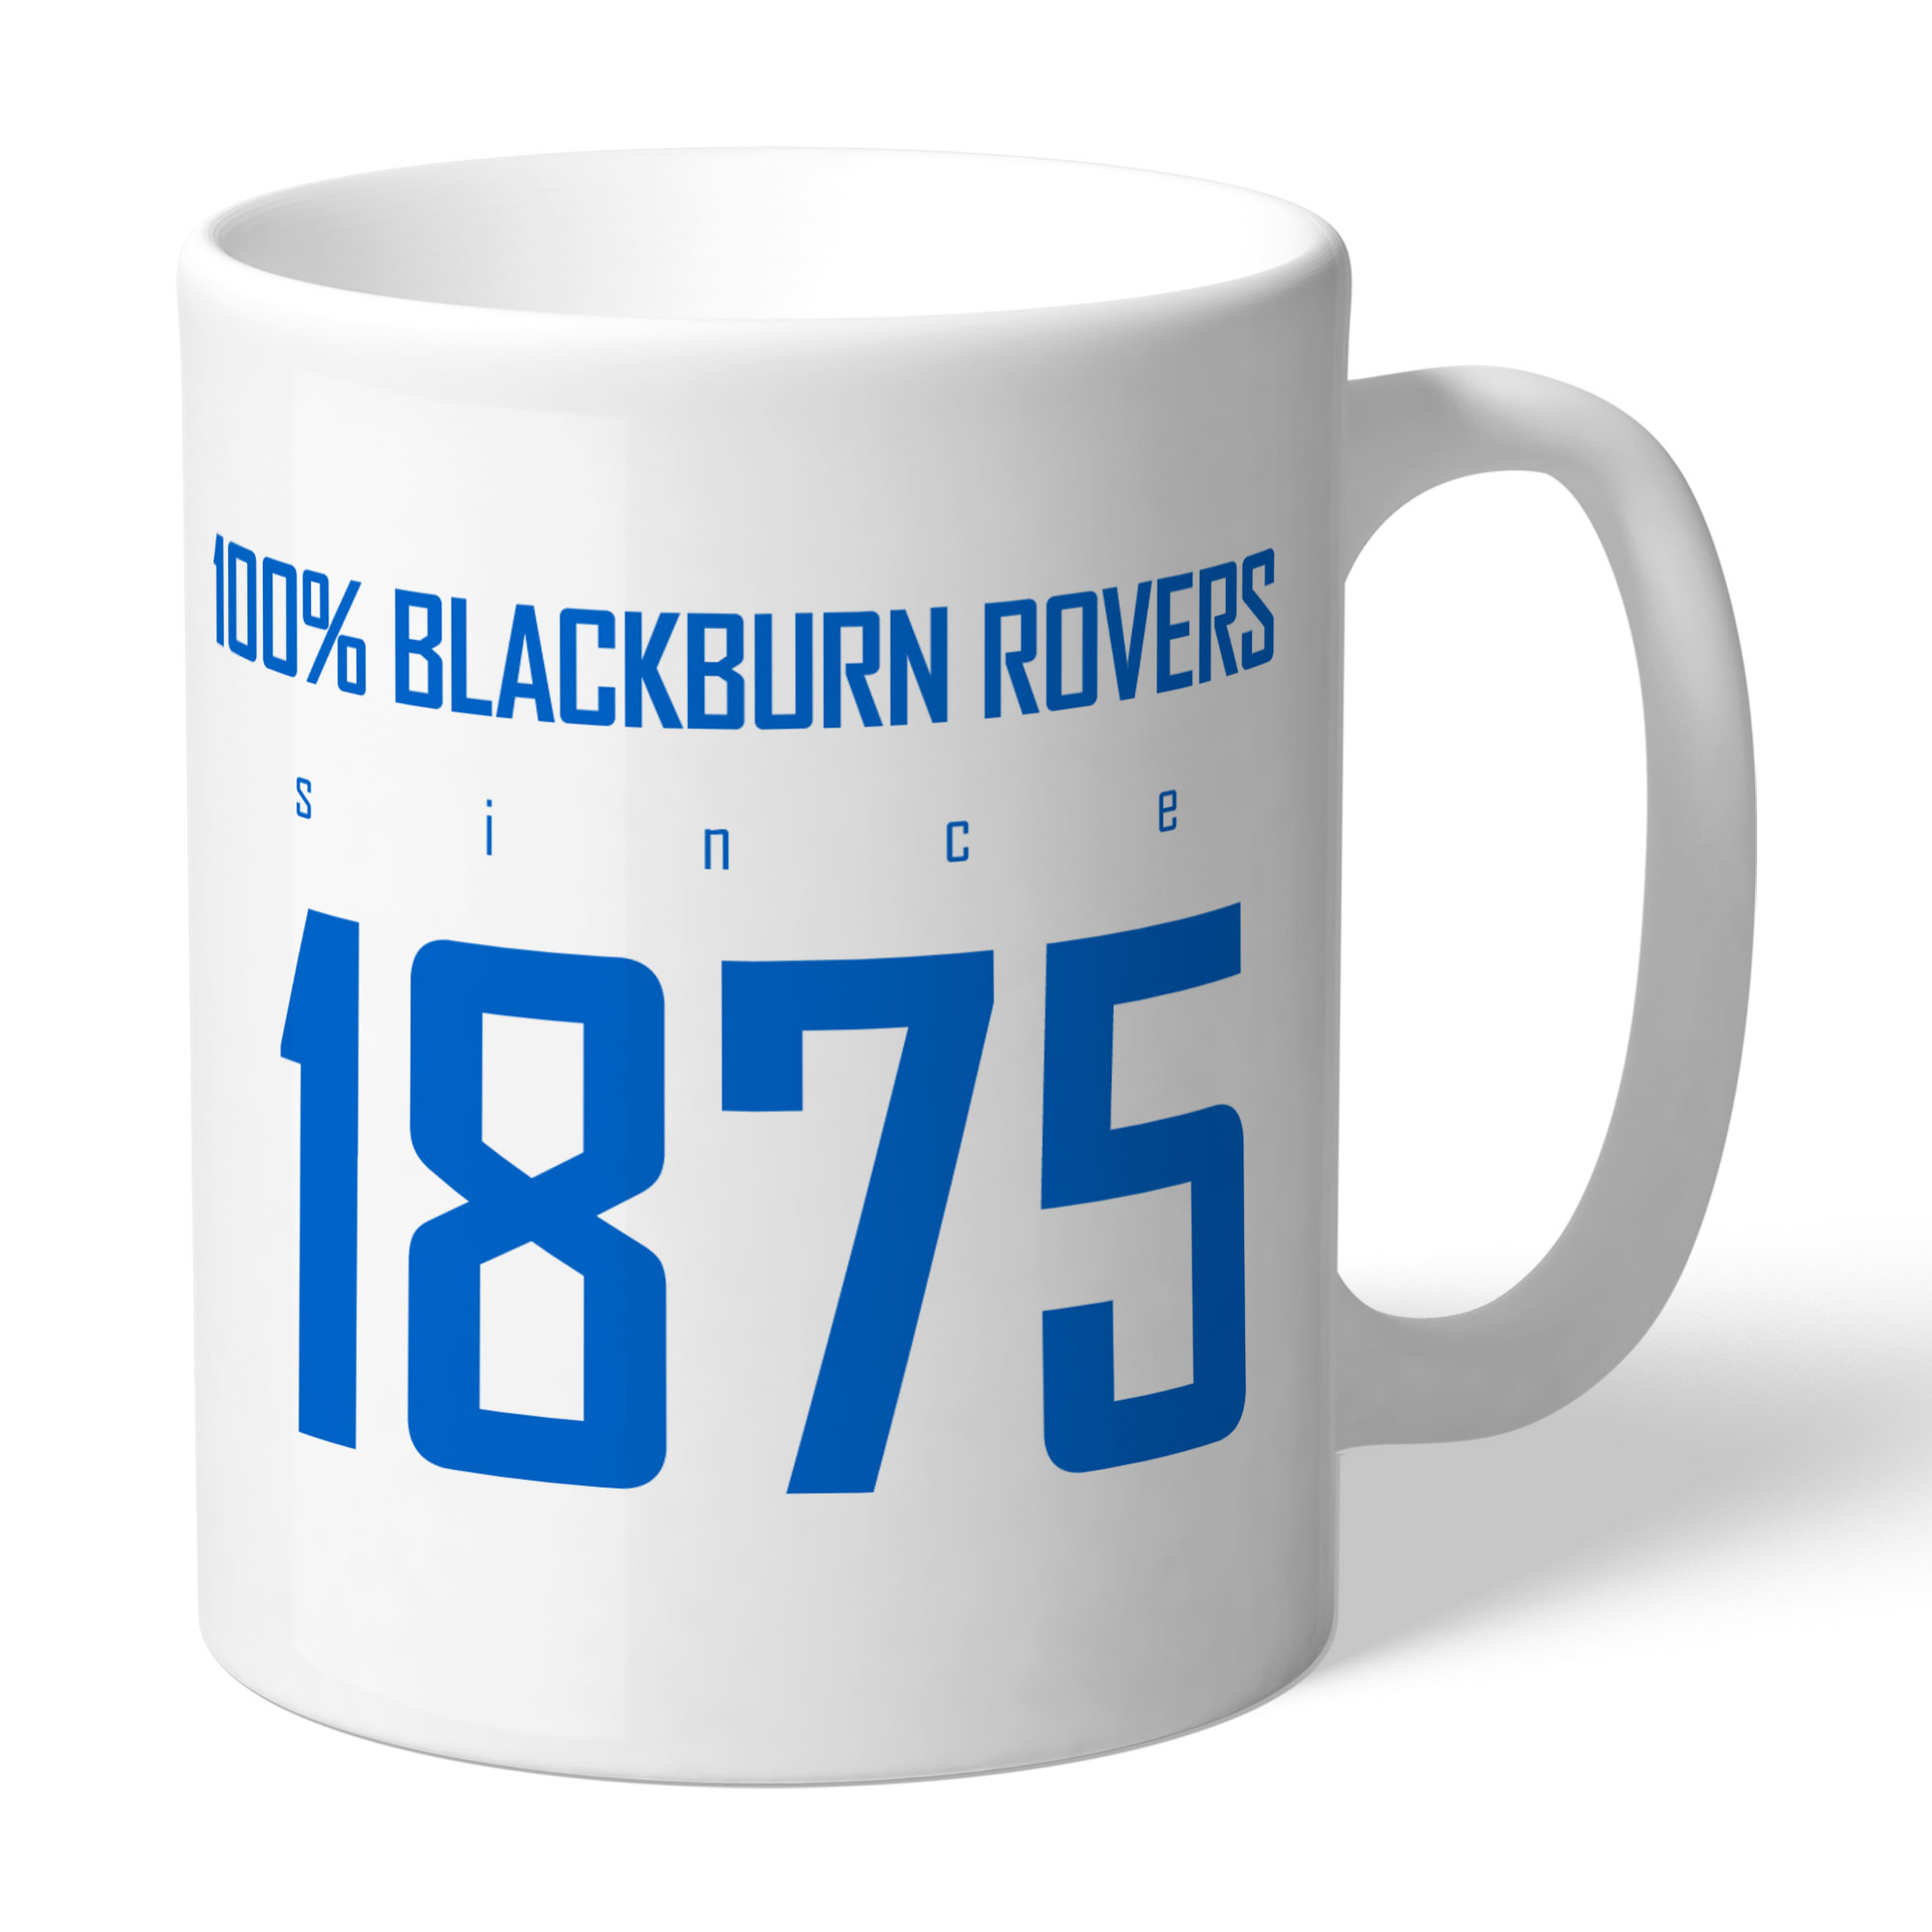 Blackburn Rovers FC 100 Percent Mug